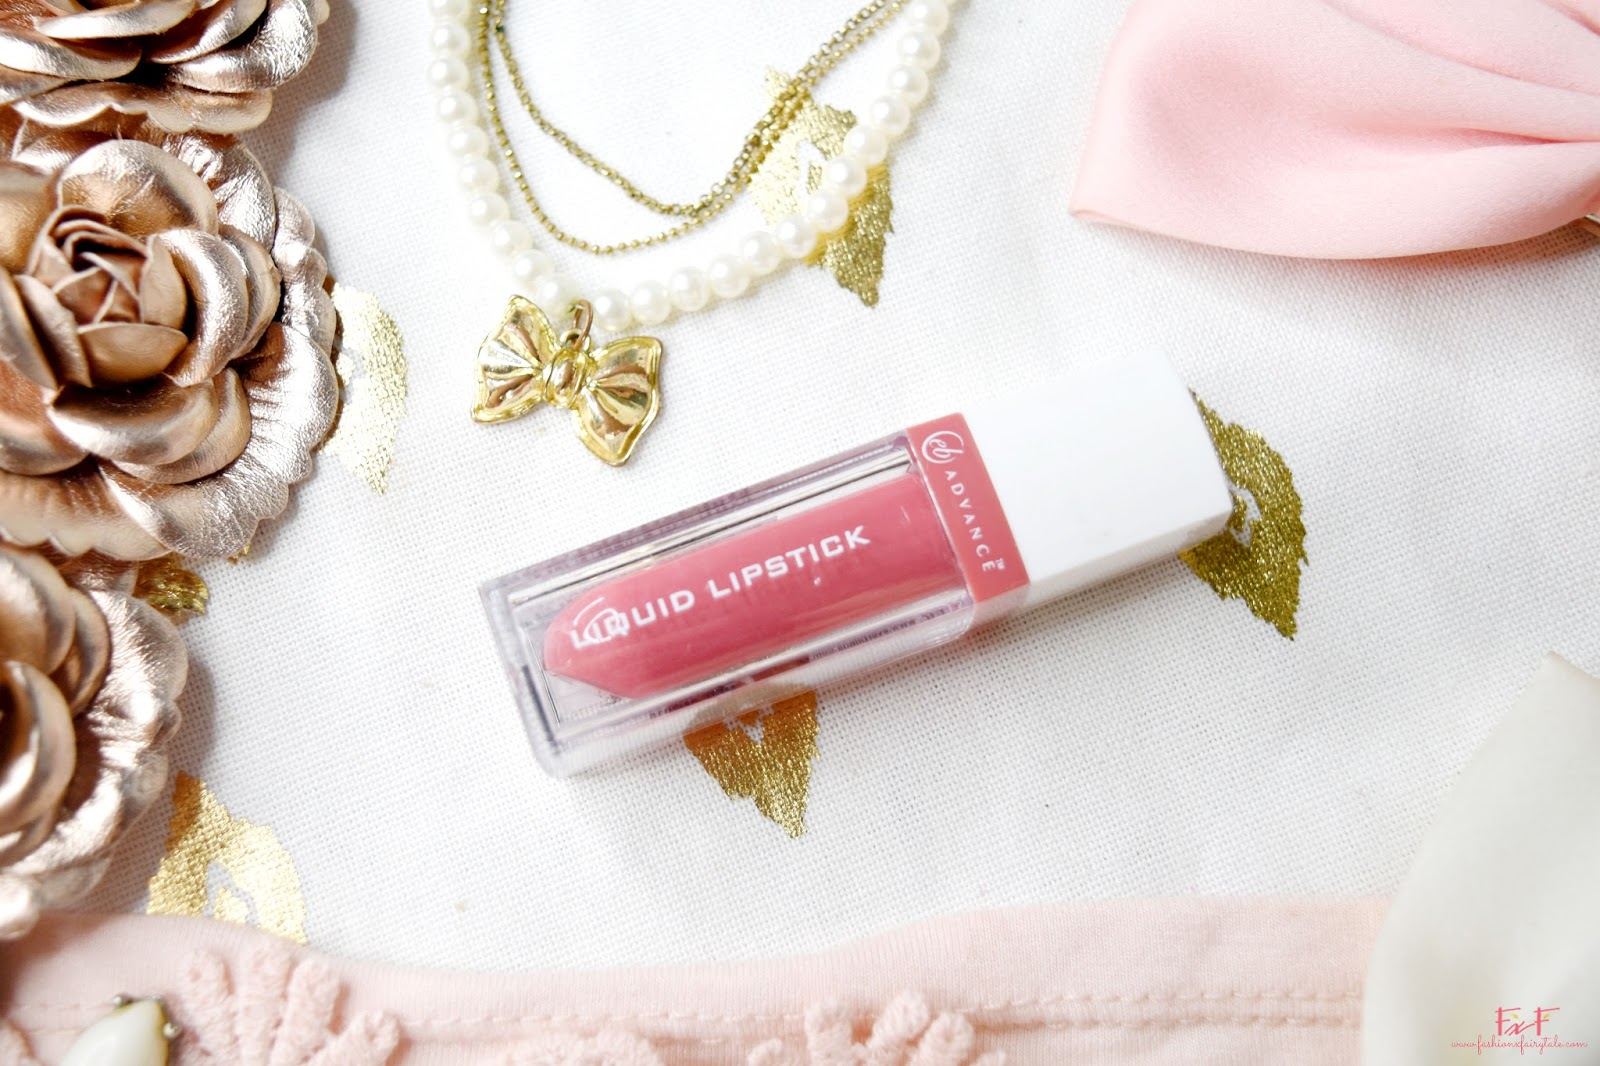 EB Advance Liquid Lipstick in Soft Lace | Review & Swatches